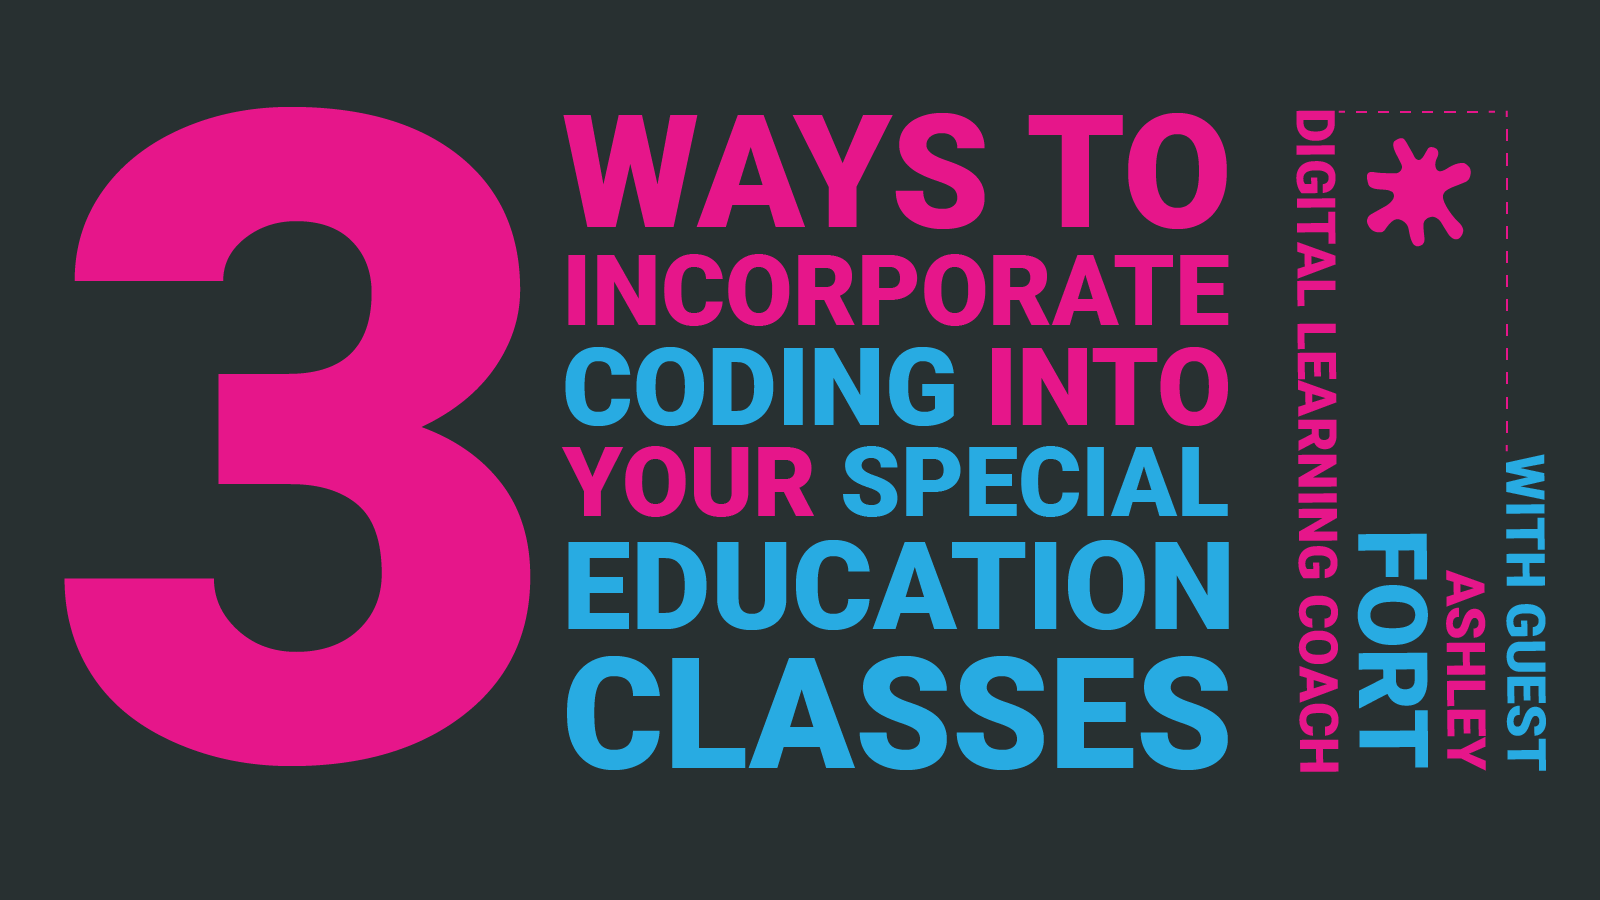 STEM Webinar - Ways to Incorporate Coding into Special Education